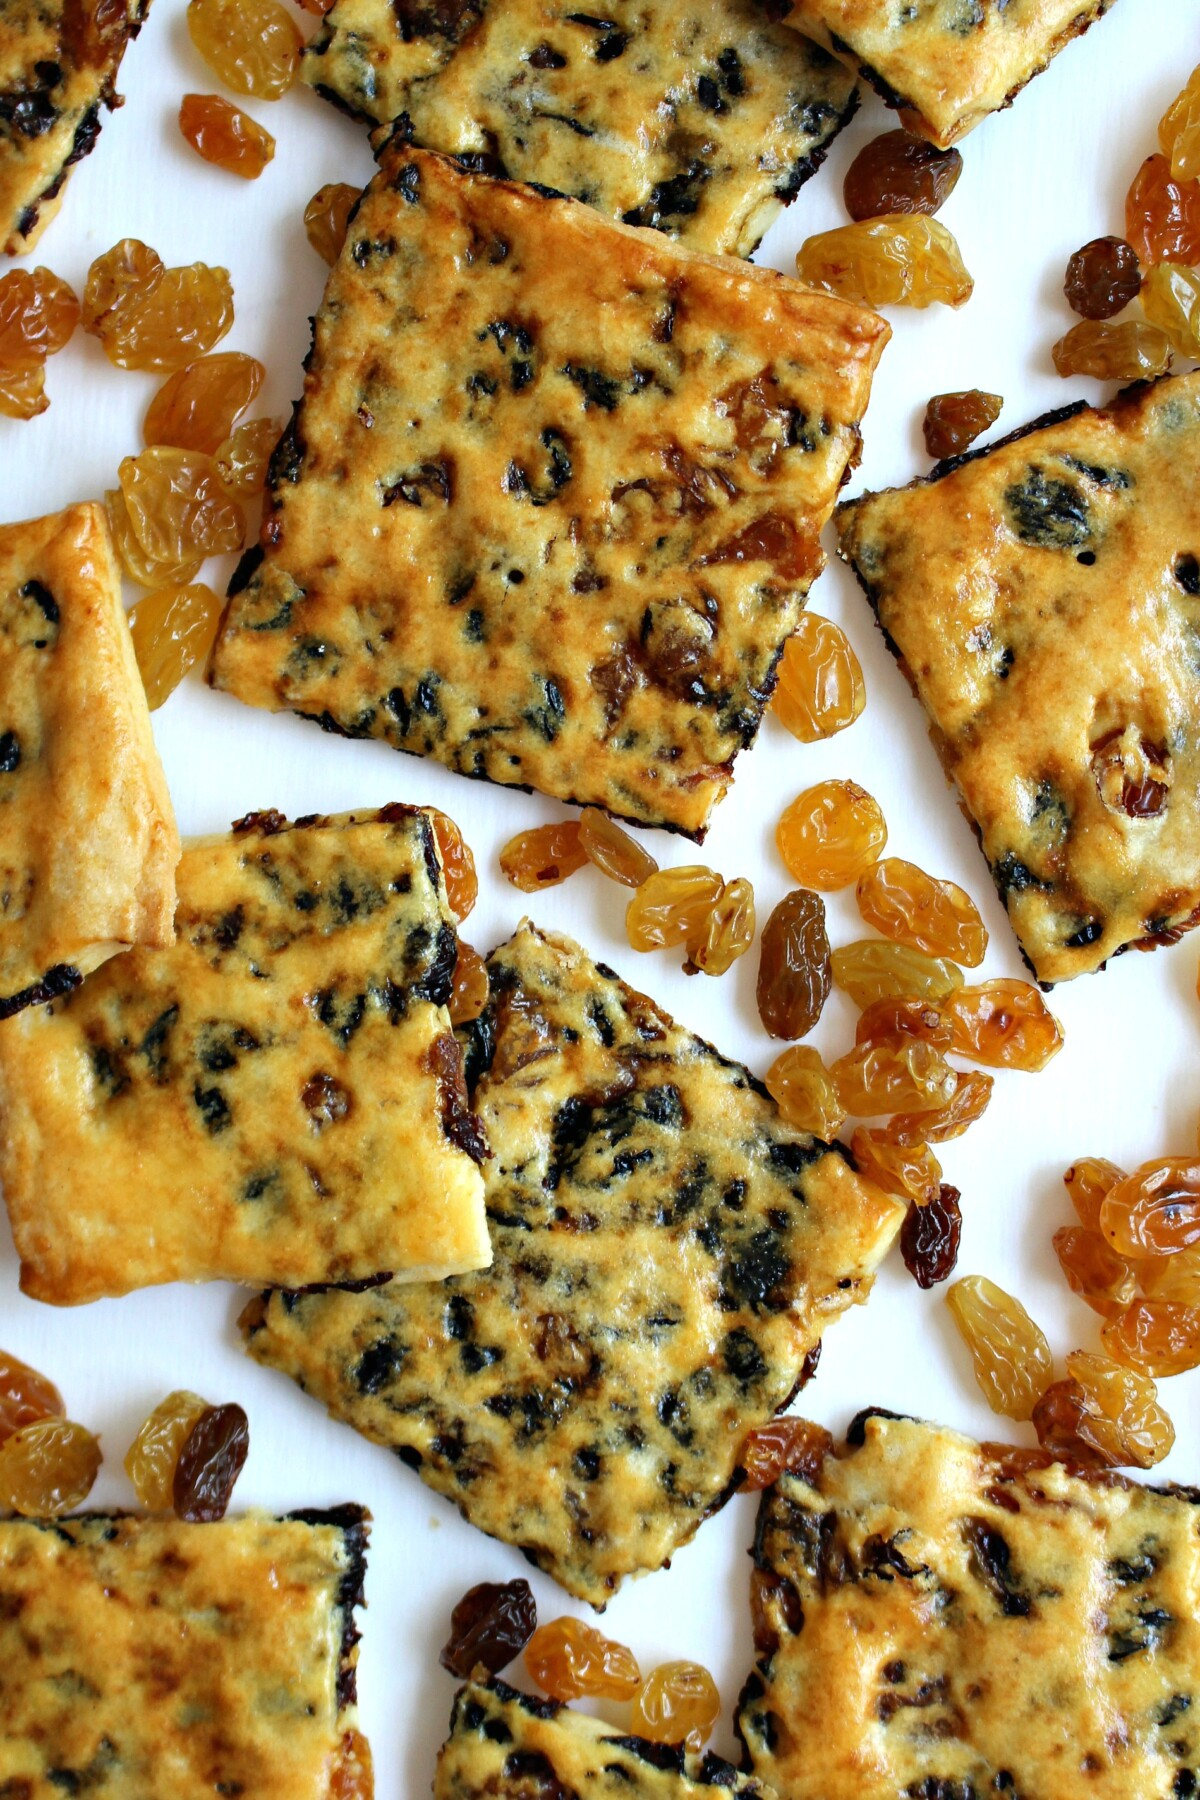 Thin cookie squares with raisins showing through the crust on a white background.